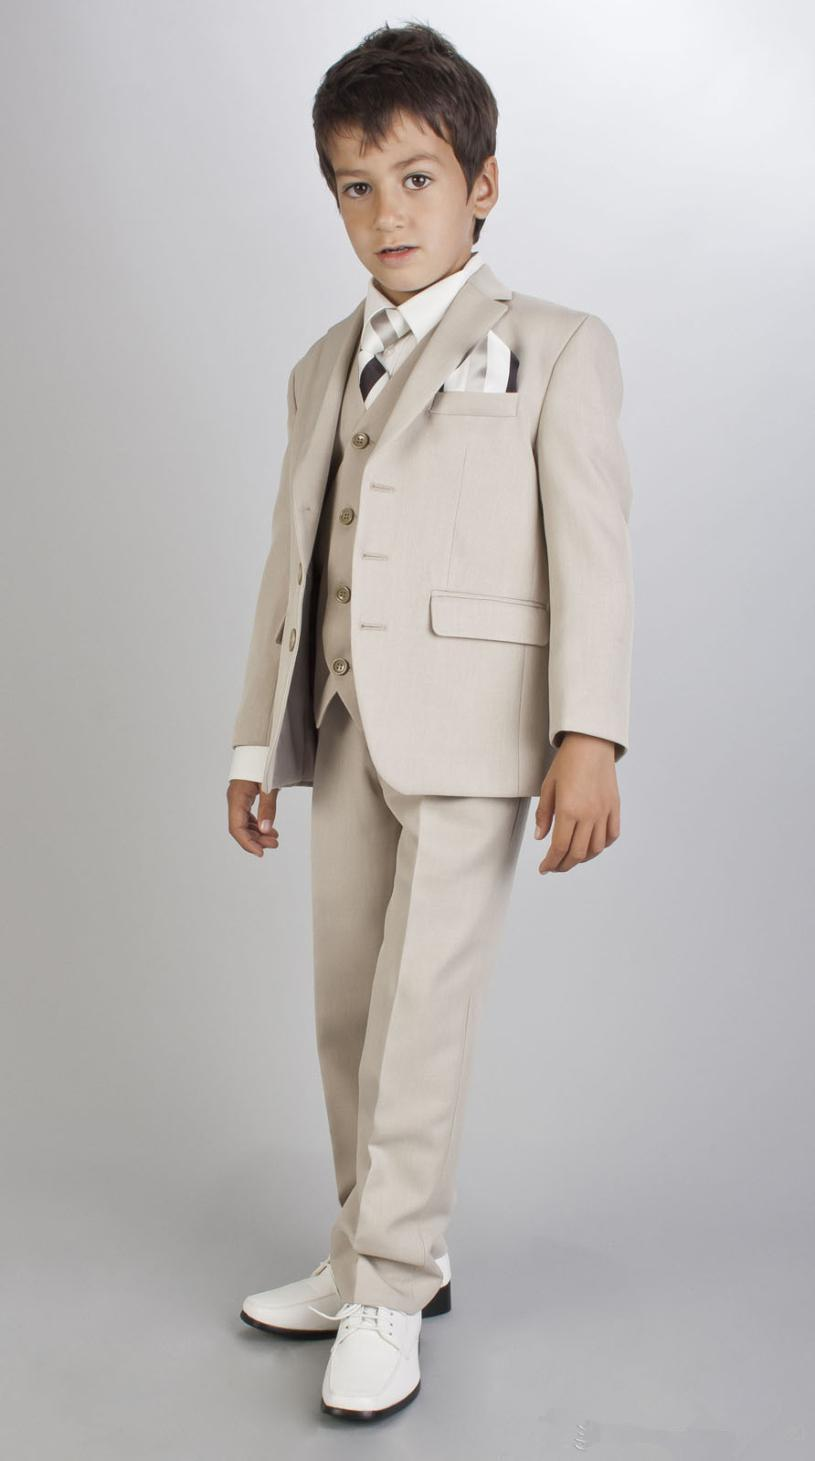 Boys Grey Suit Boys Holy Communion Suit First Communion